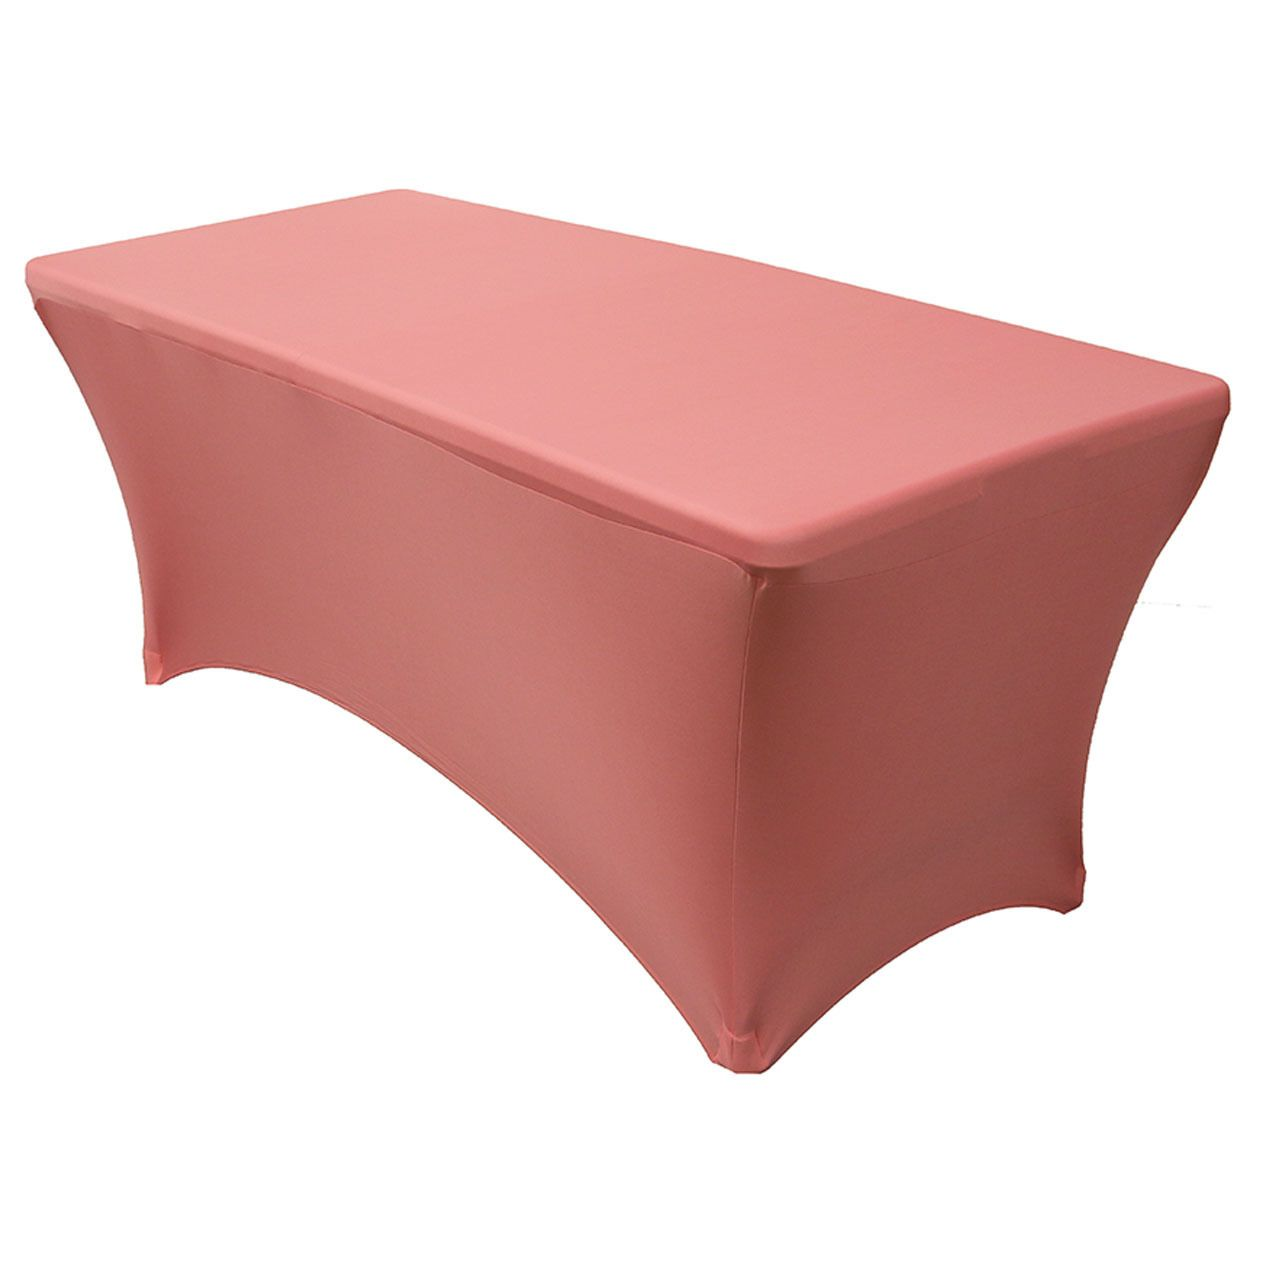 scuba chair covers wholesale best office mat for hardwood floors stretch spandex 6 ft rectangular table cover coral